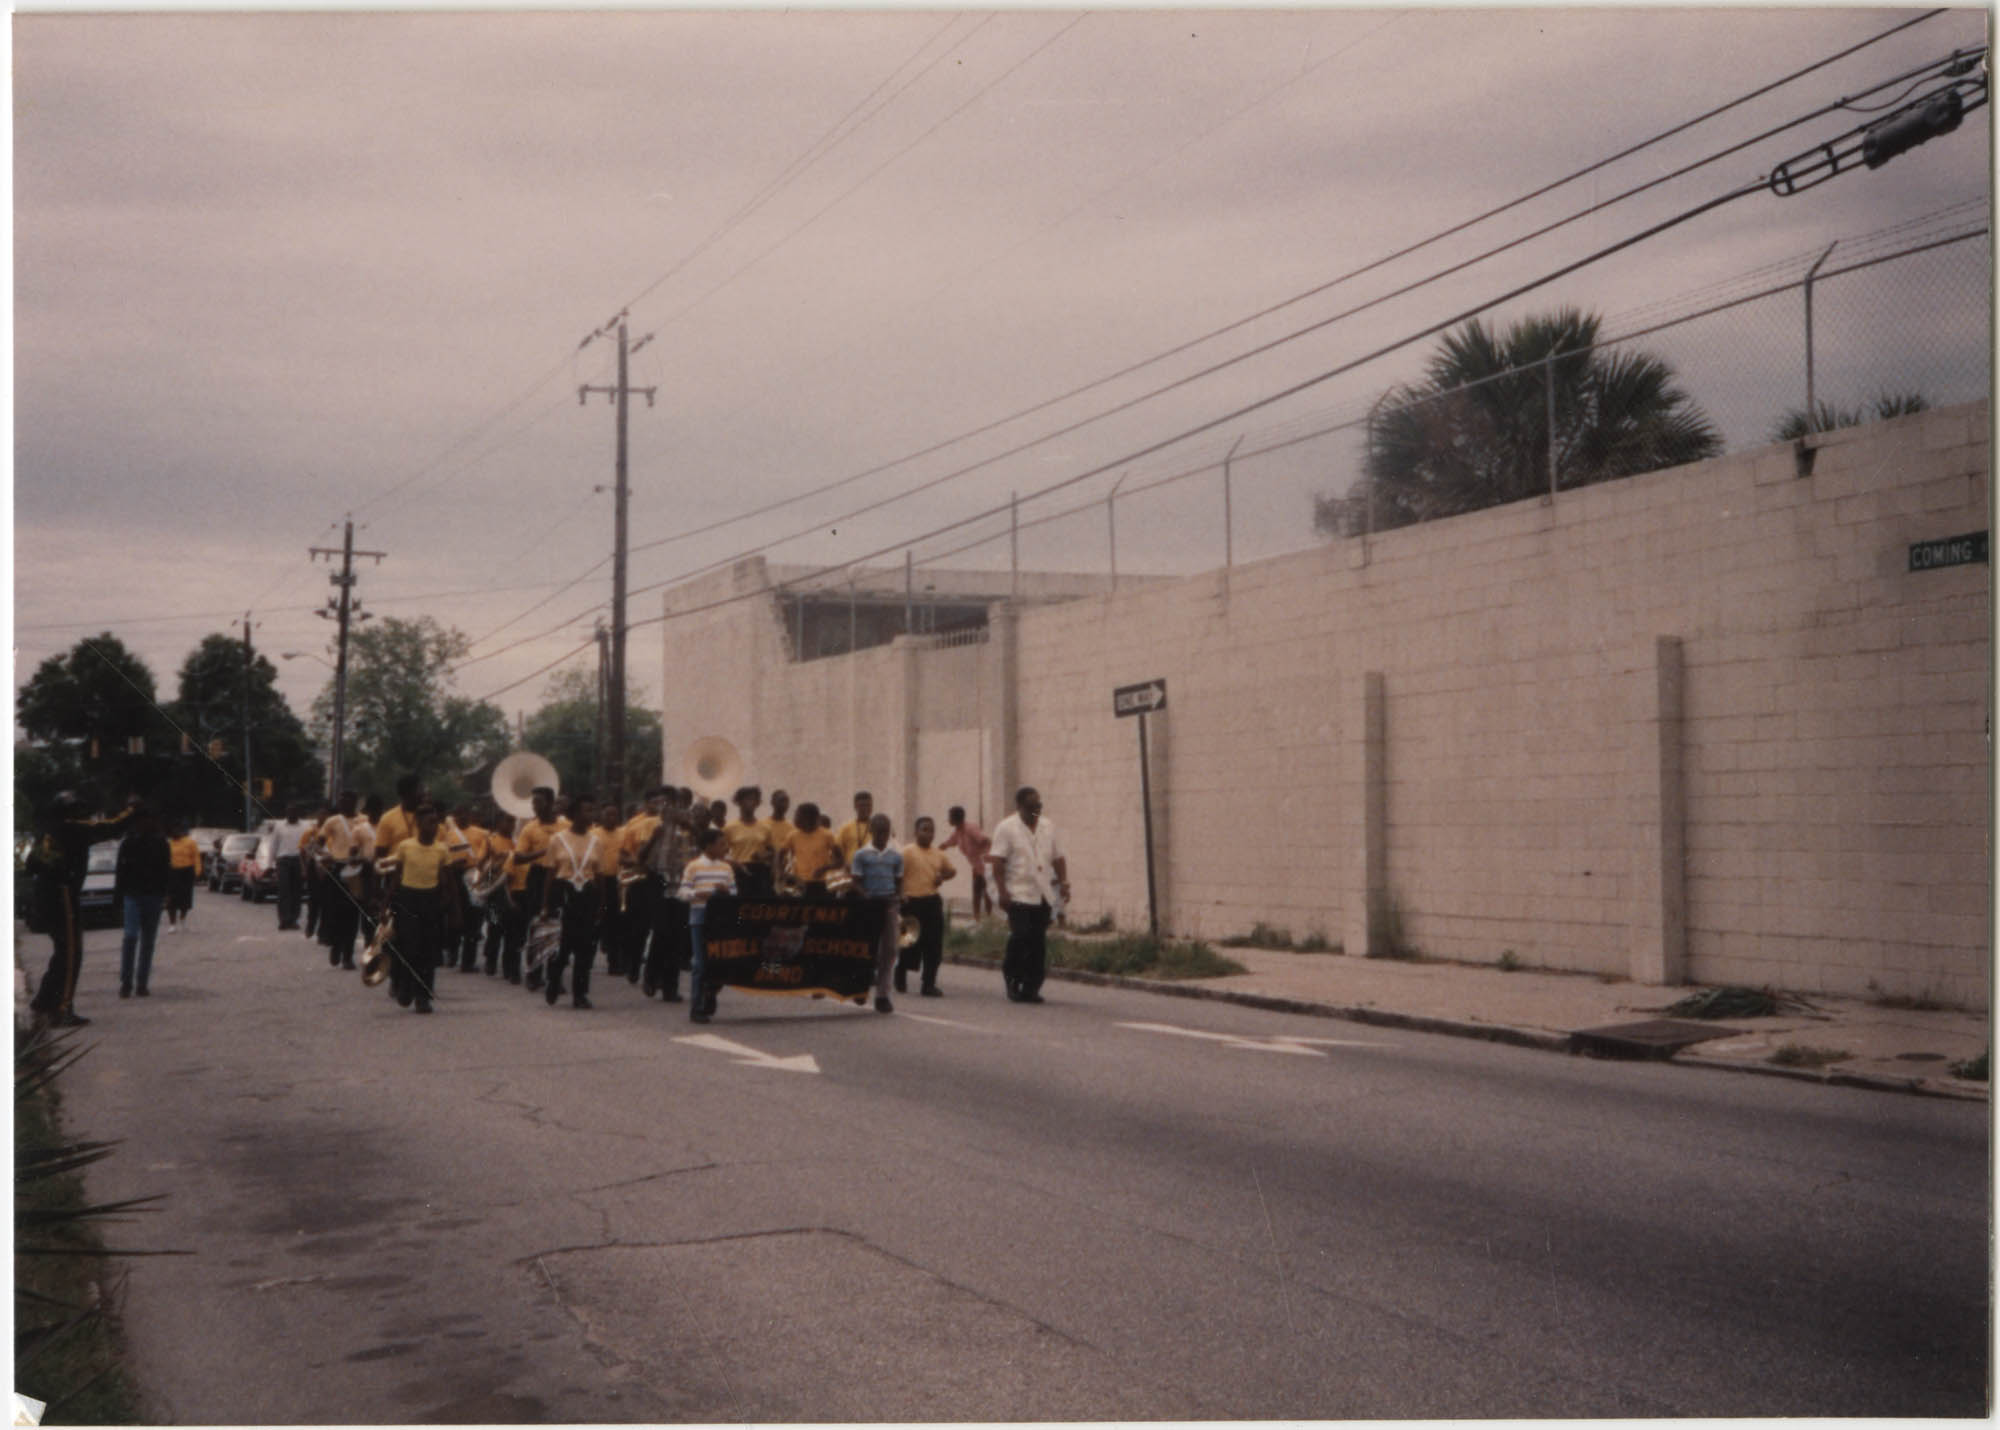 Photograph of a Marching Band